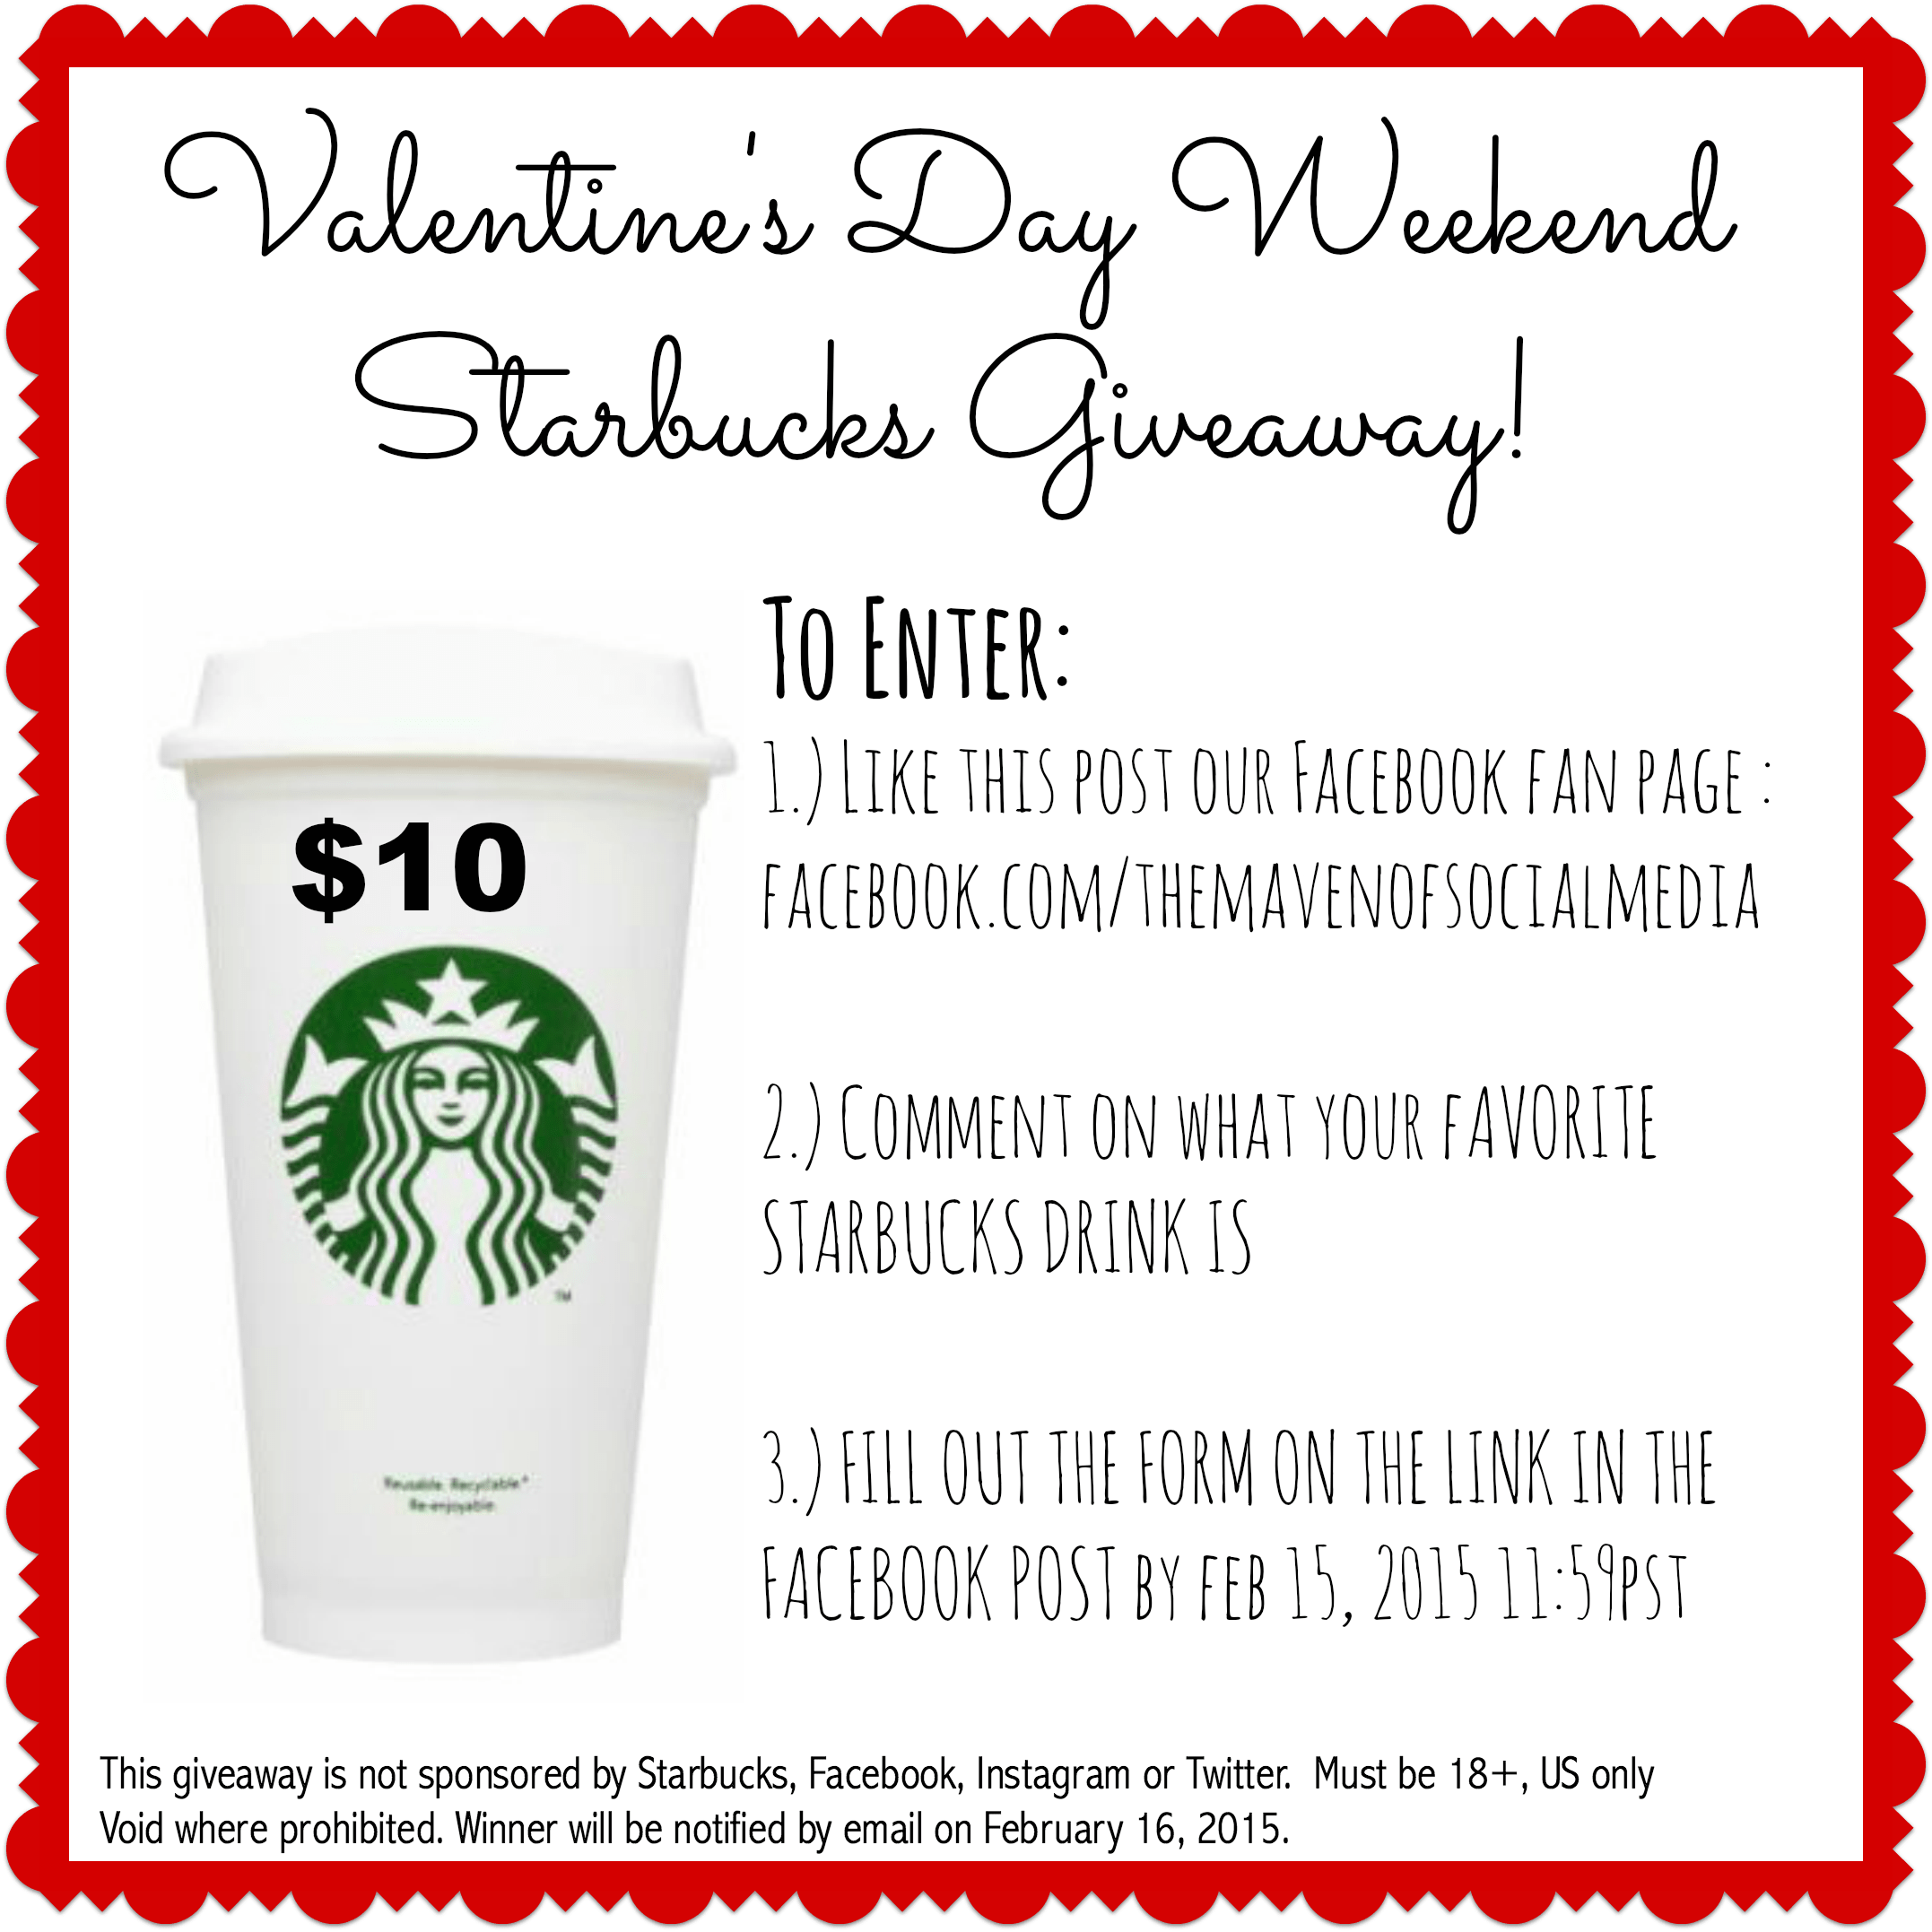 Valentine's Day Weekend  Starbucks Giveaway!